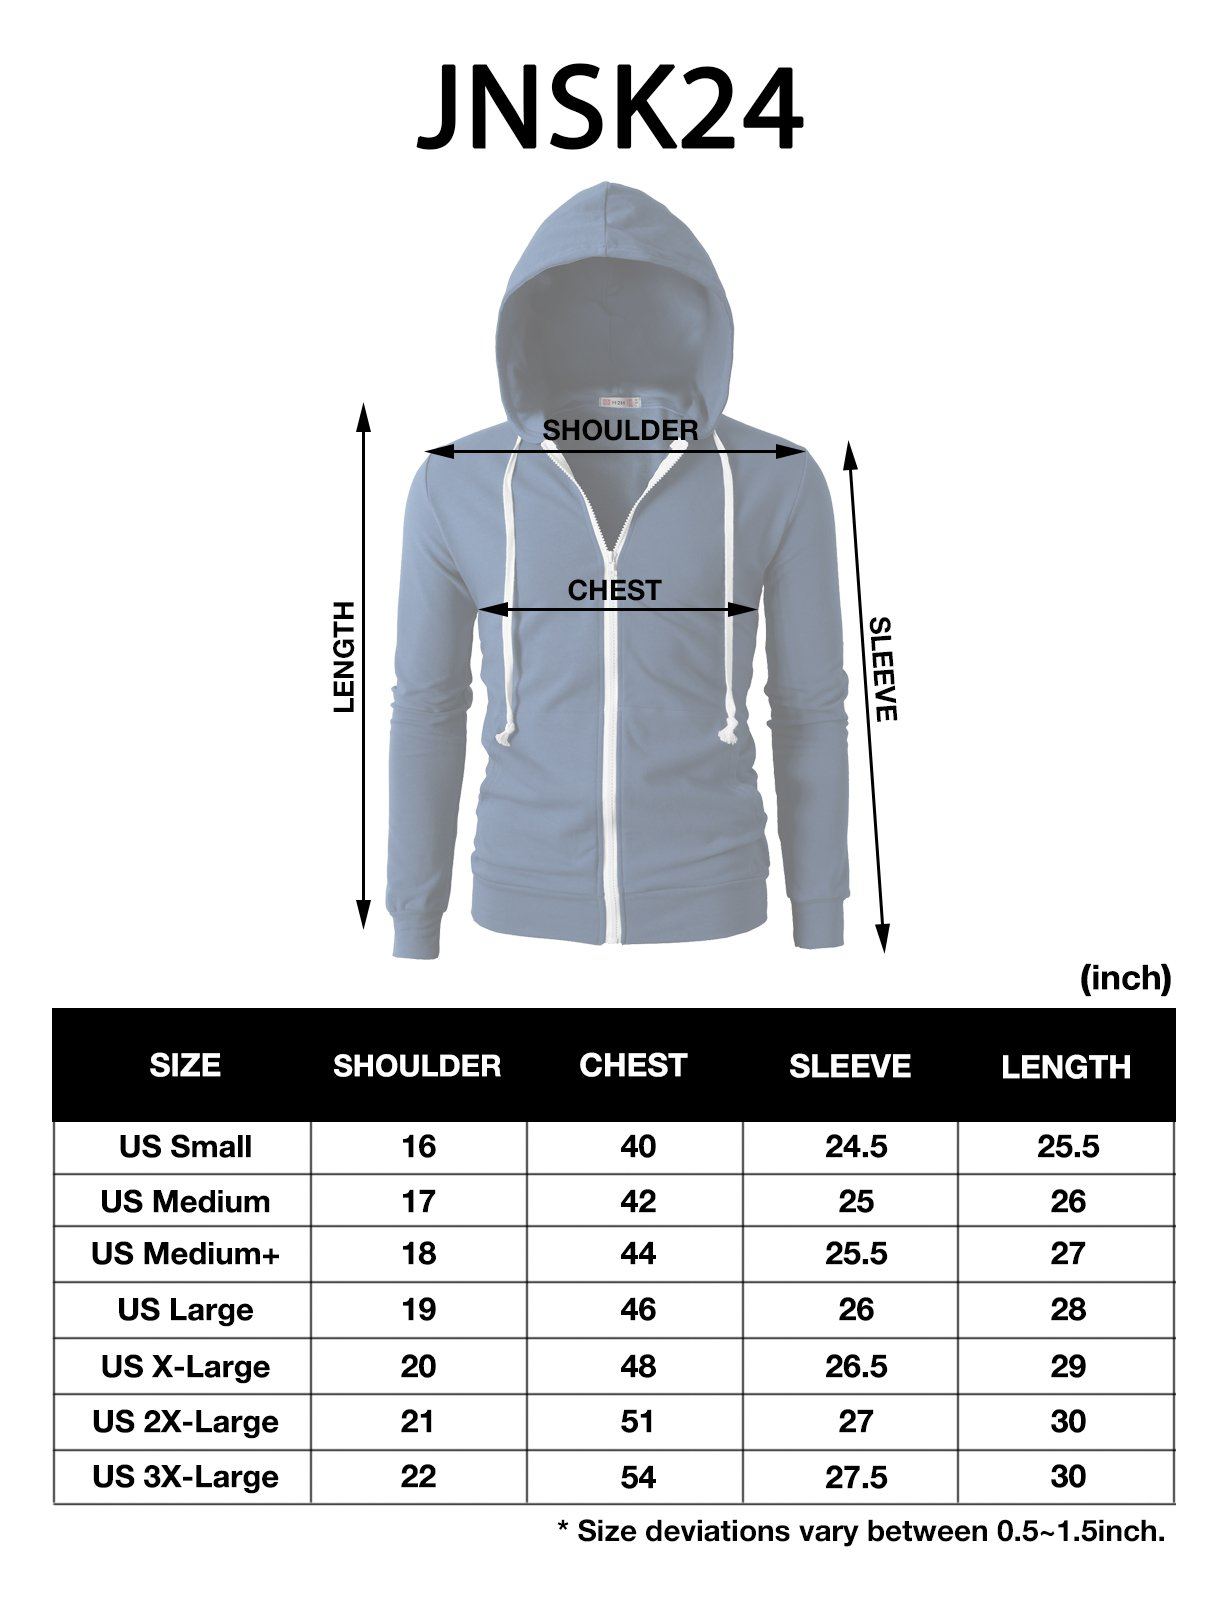 H2H Men's Casual Striped Drawstring Hooded And Zipper Closure Hoodies FORESTGREEN US XL/Asia XXXL (JNSK24) by H2H (Image #6)